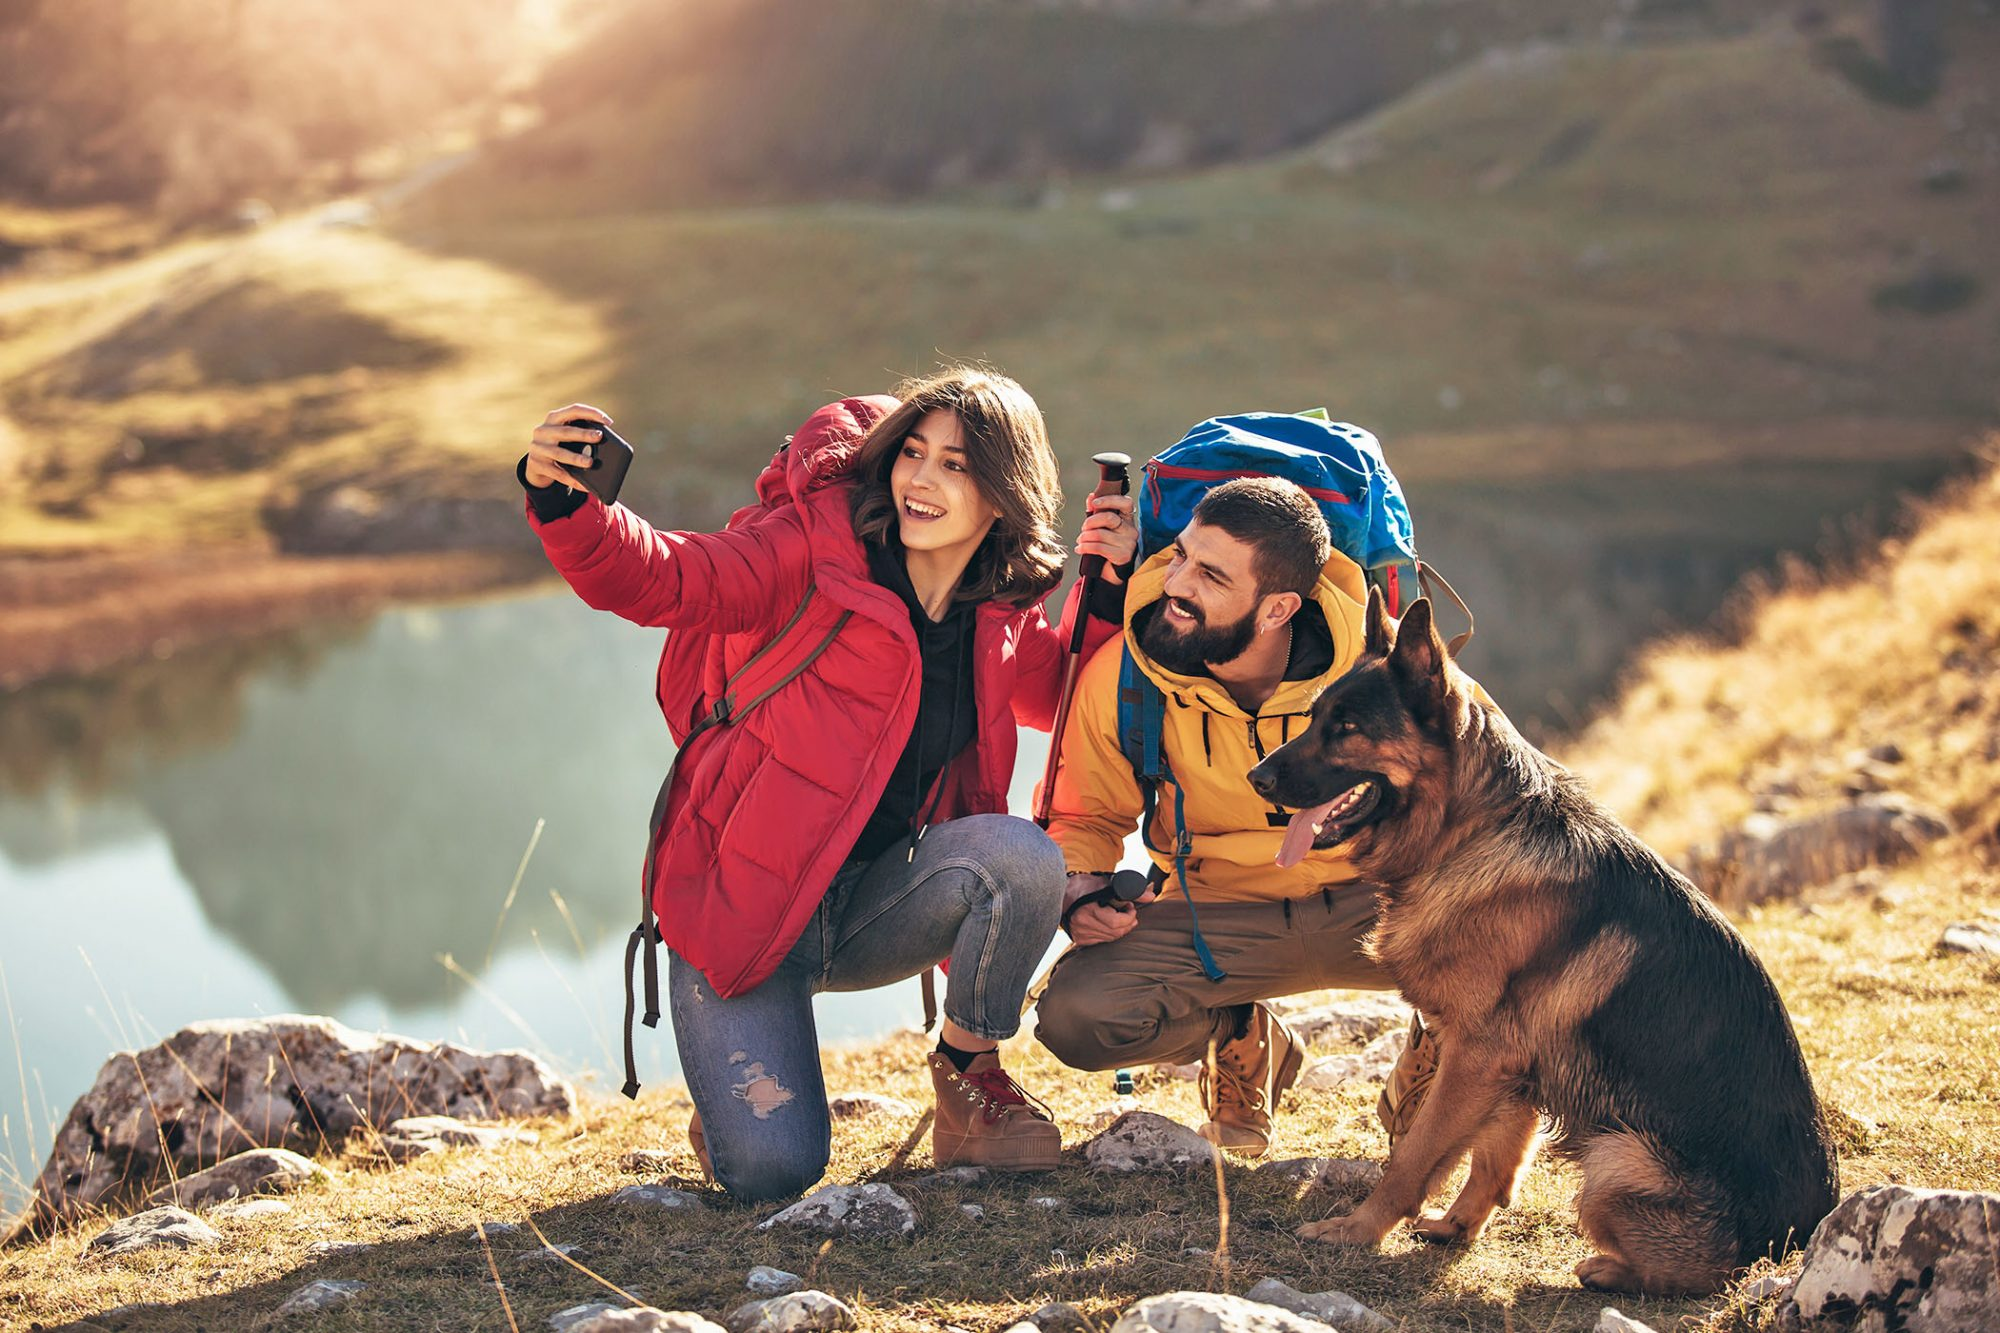 couple posing for a photo with their dog on a hike at a dog-friendly hiking spot